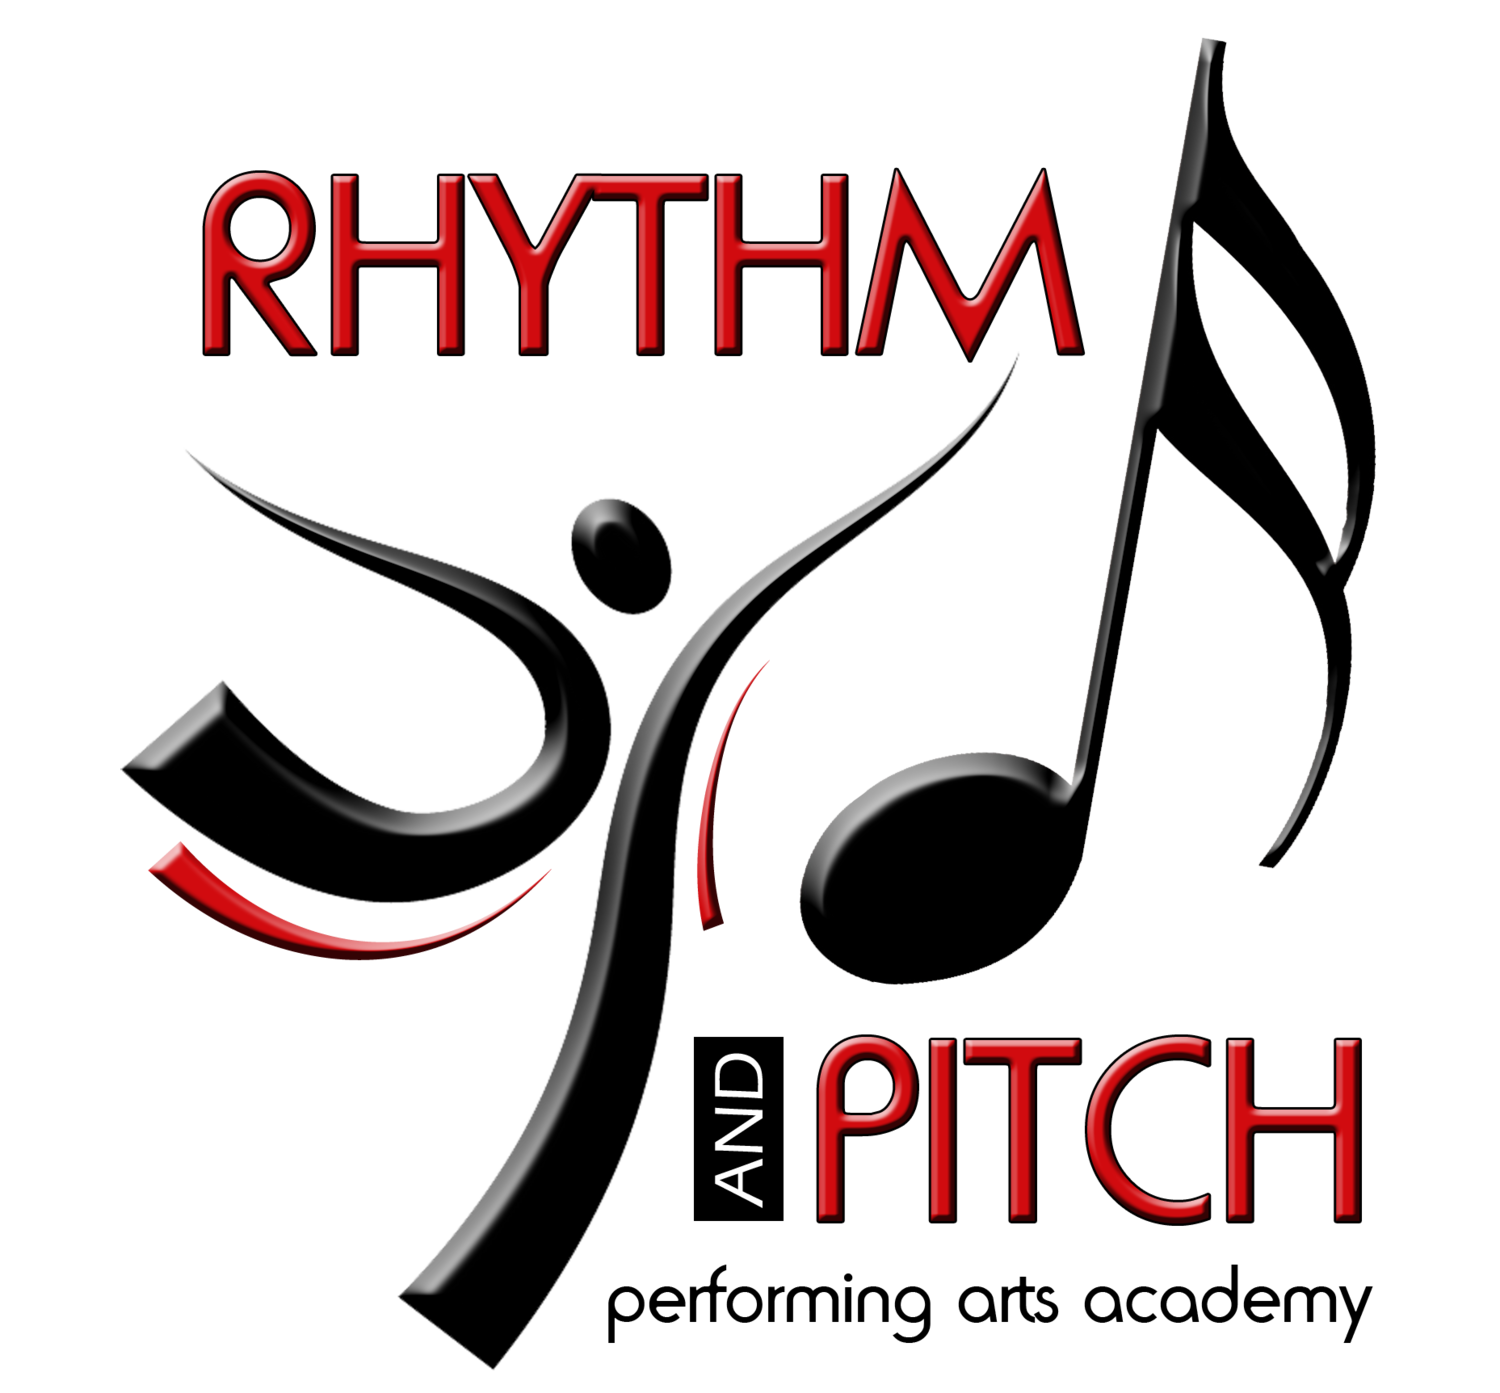 Rhythm & Pitch